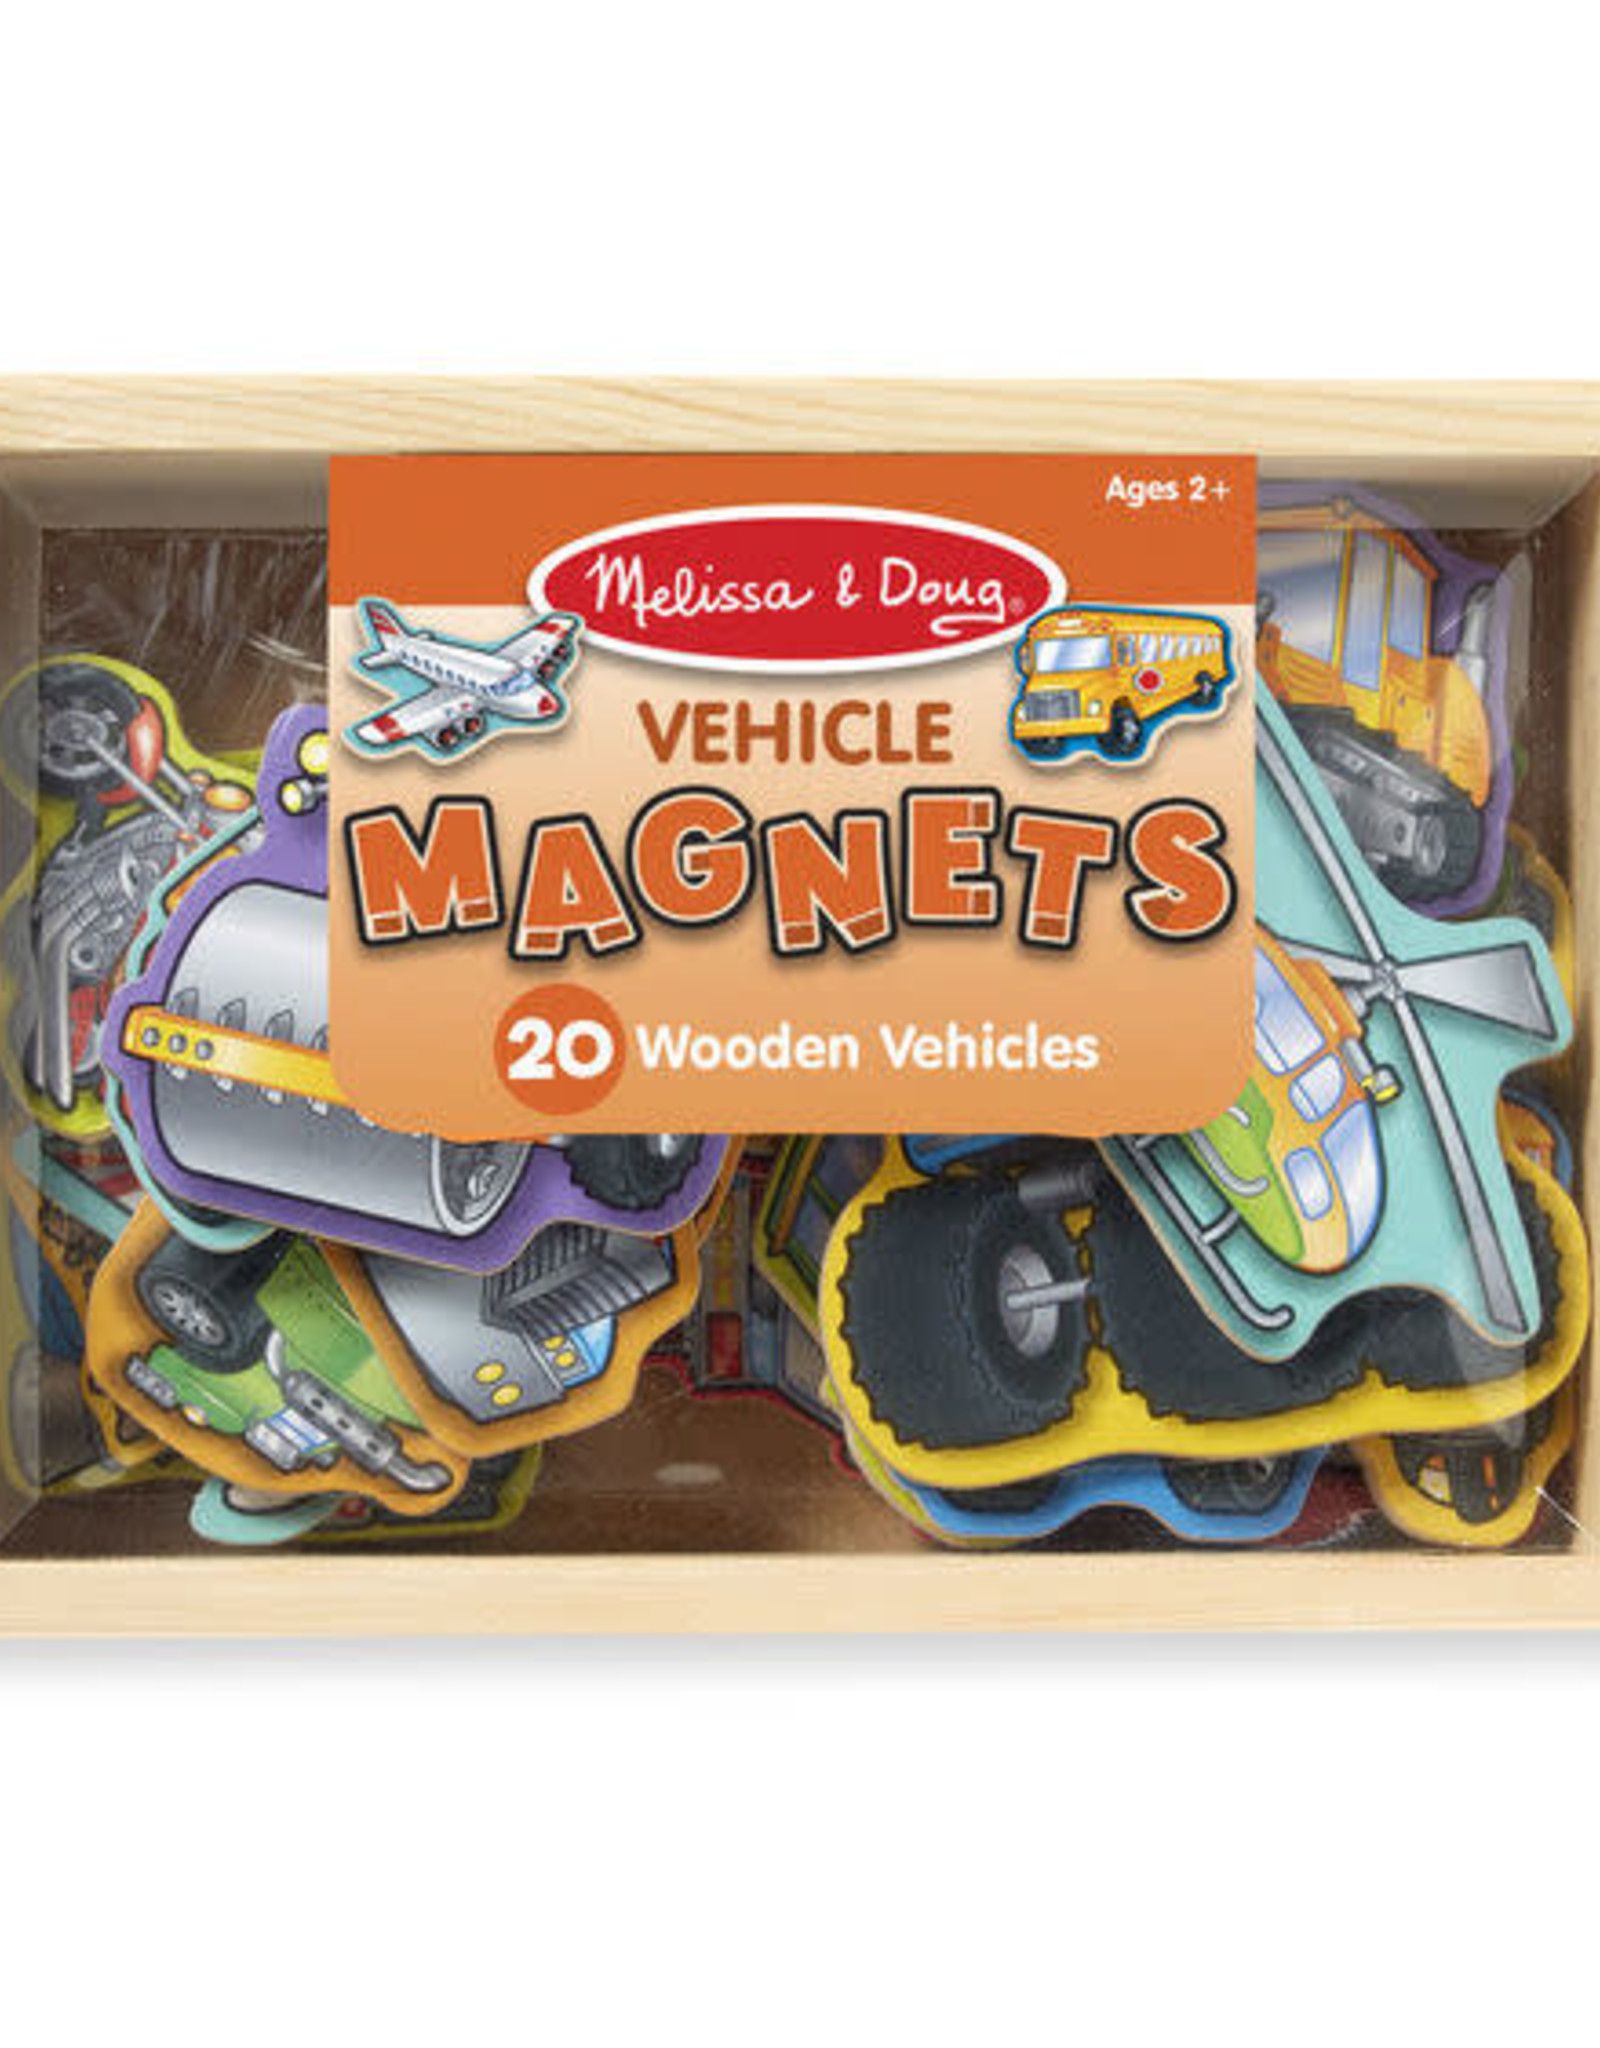 Melissa & Doug MD Wooden Magnets Vehicles